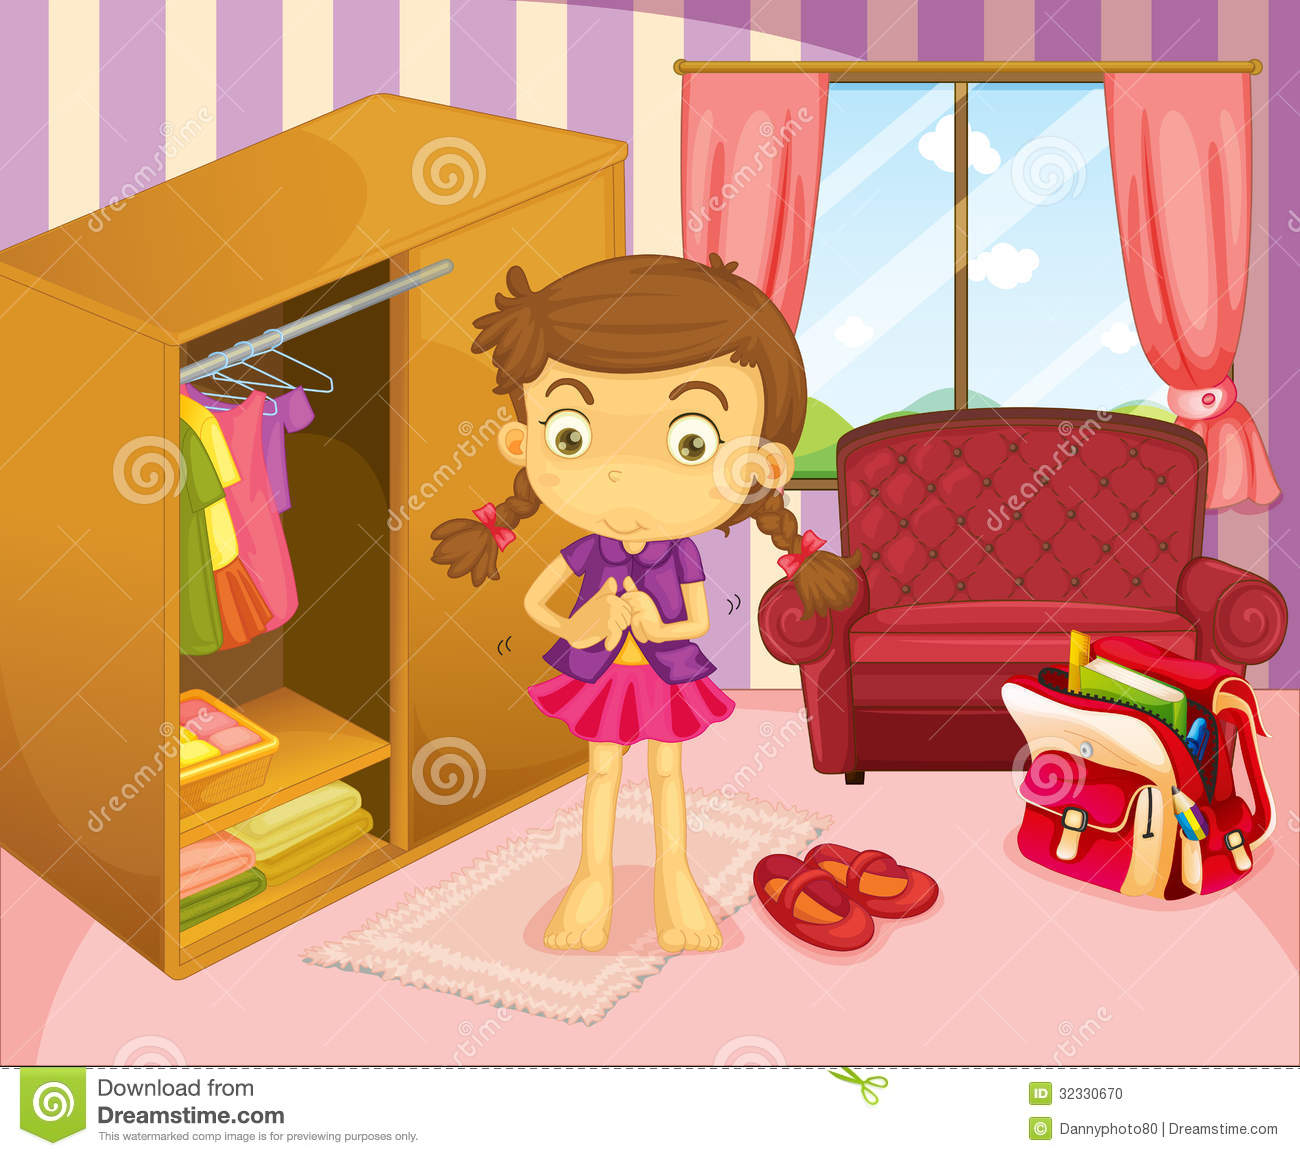 Picture of a girl preparing for school clipart png free library Girl Preparing For School Clipart png free library